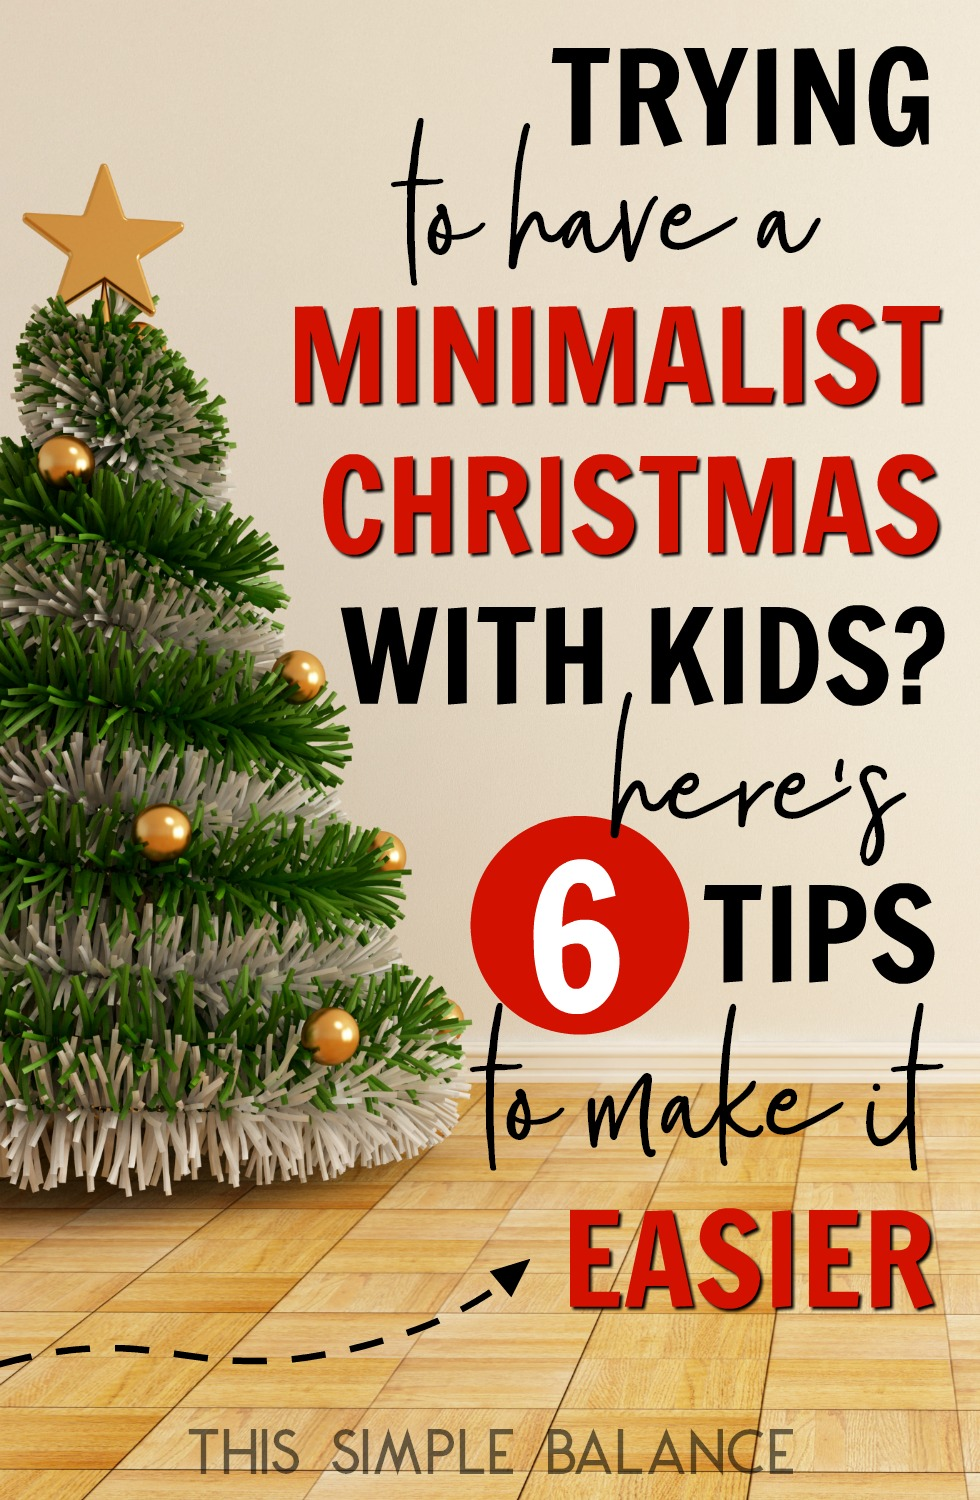 Minimalist Christmas.How To Transition To A Minimalist Christmas With Kids This